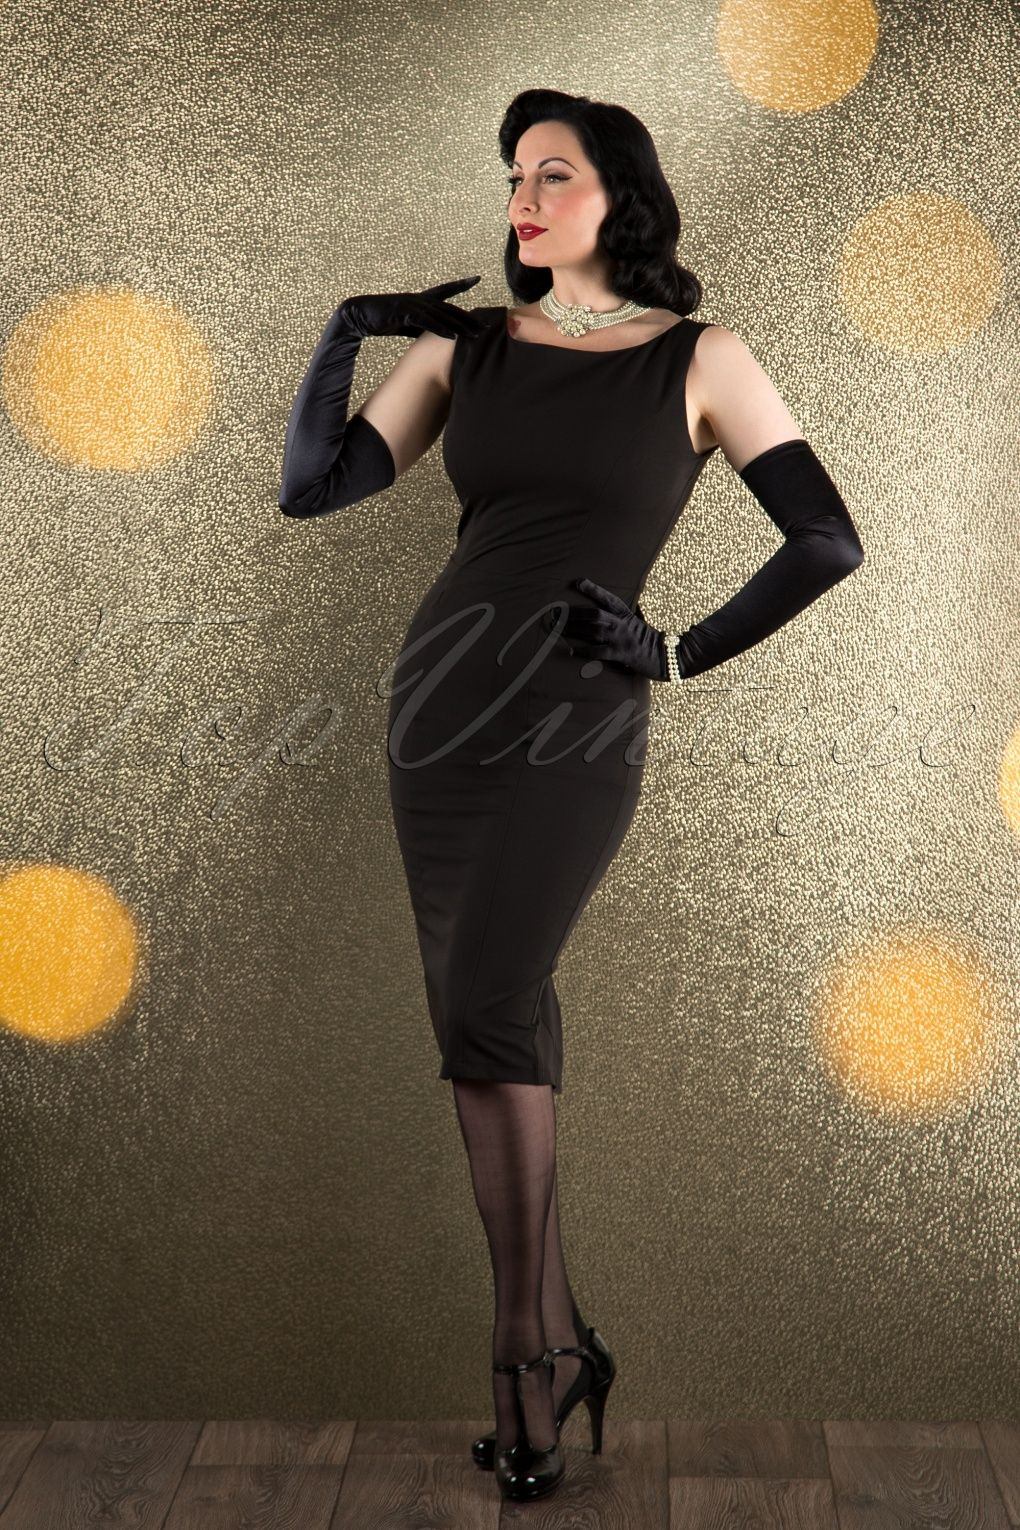 bda7c6d597c20f This 50s Hepburn Pencil Dress is a classic pencil dress inspired by the  elegant Audrey Hepburn! The possibilities are endless for dressing it up or  down to ...